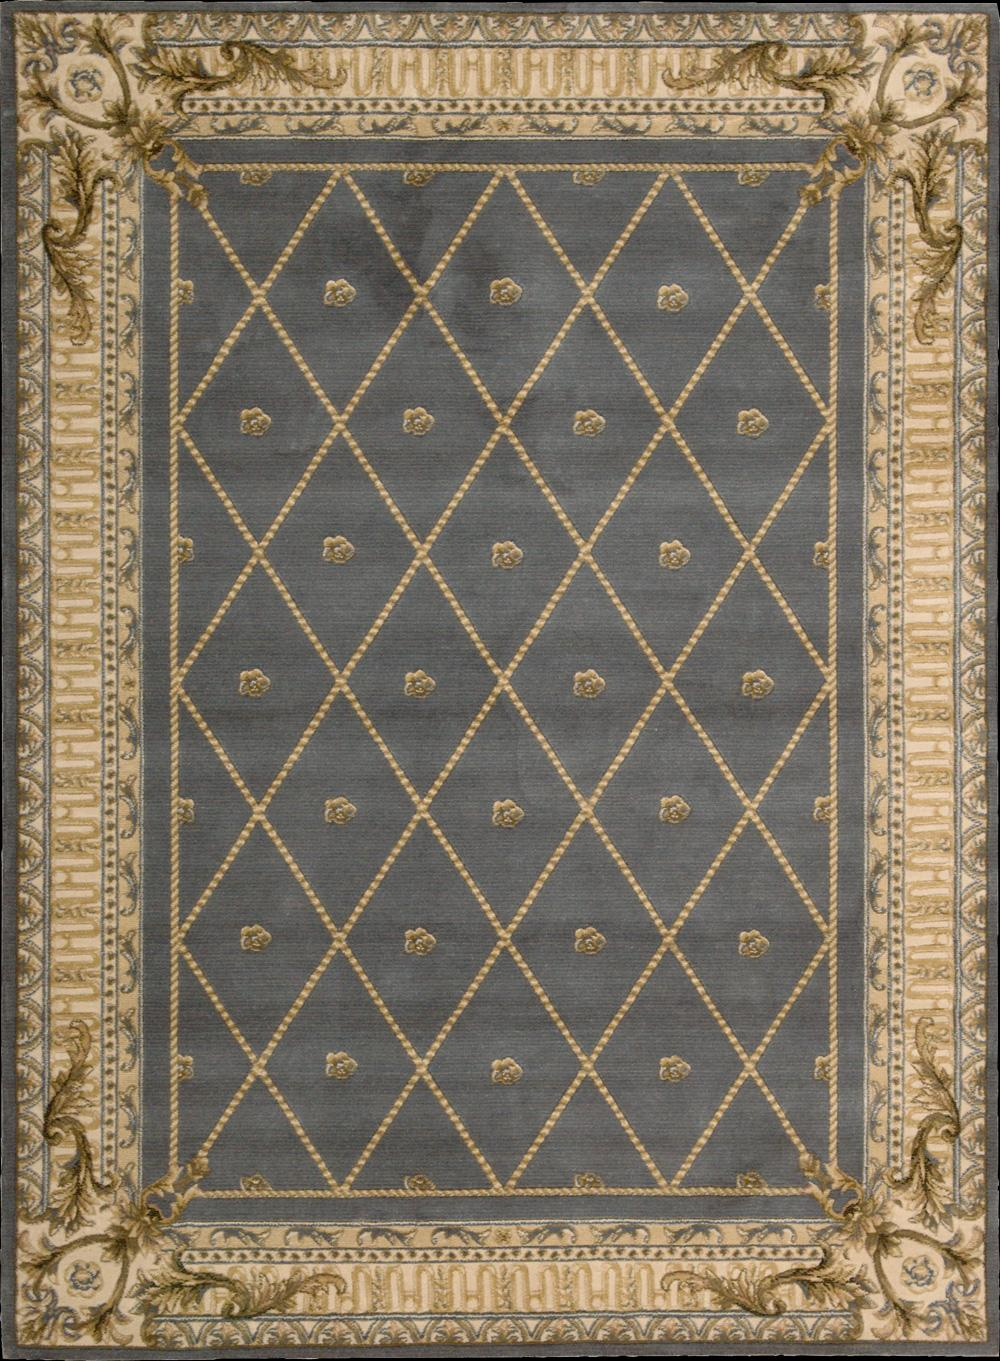 "Nourison Ashton House Area Rug 5'6"" x 7'5"" - Item Number: 13532"